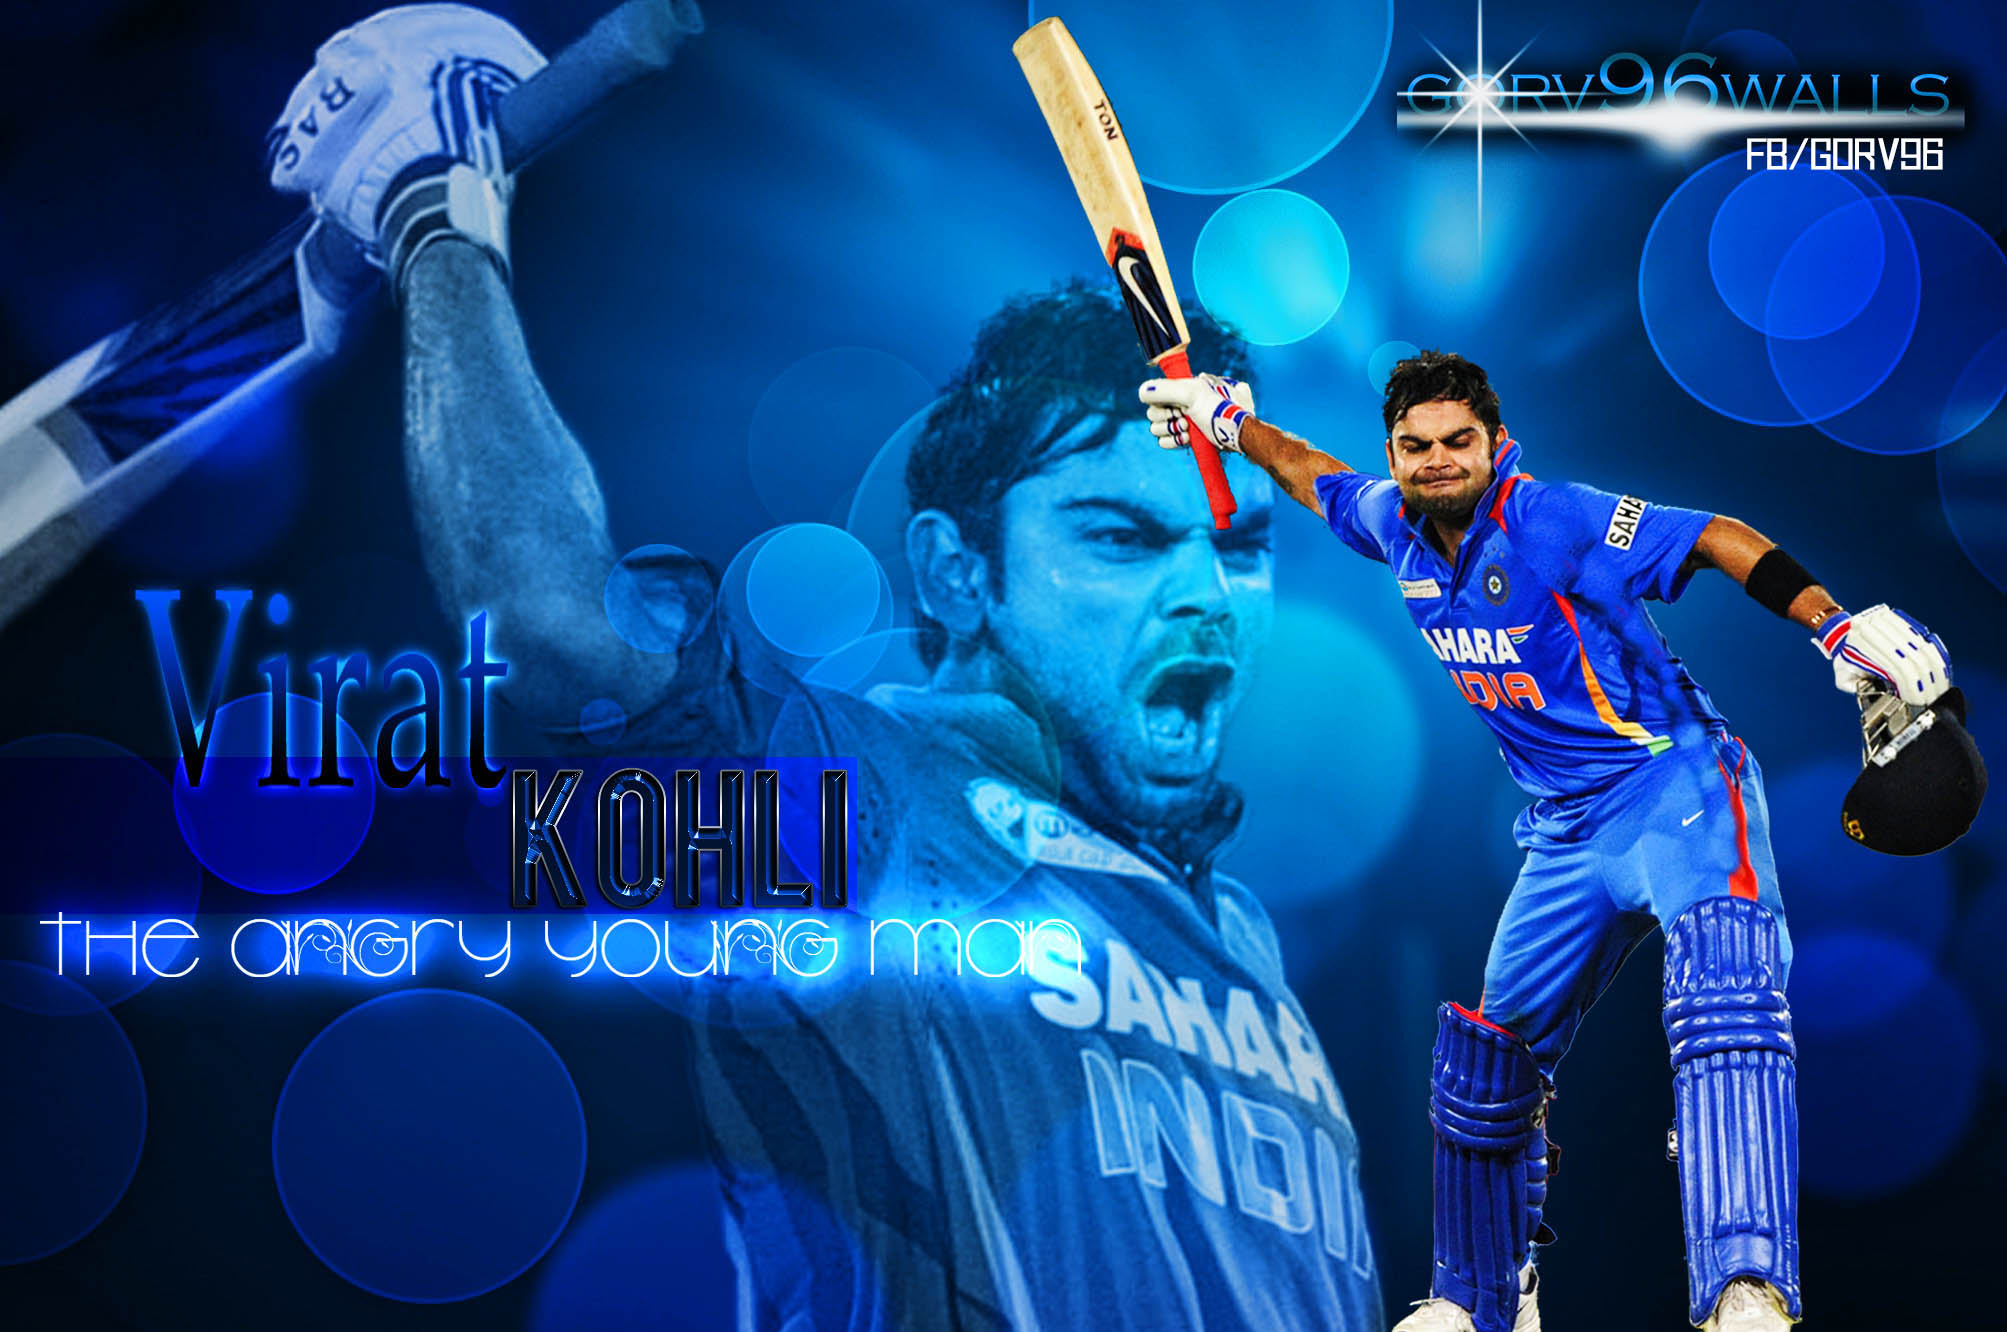 Virat Kohligorv96walls Hd Wallpaper Background Image 2007x1332